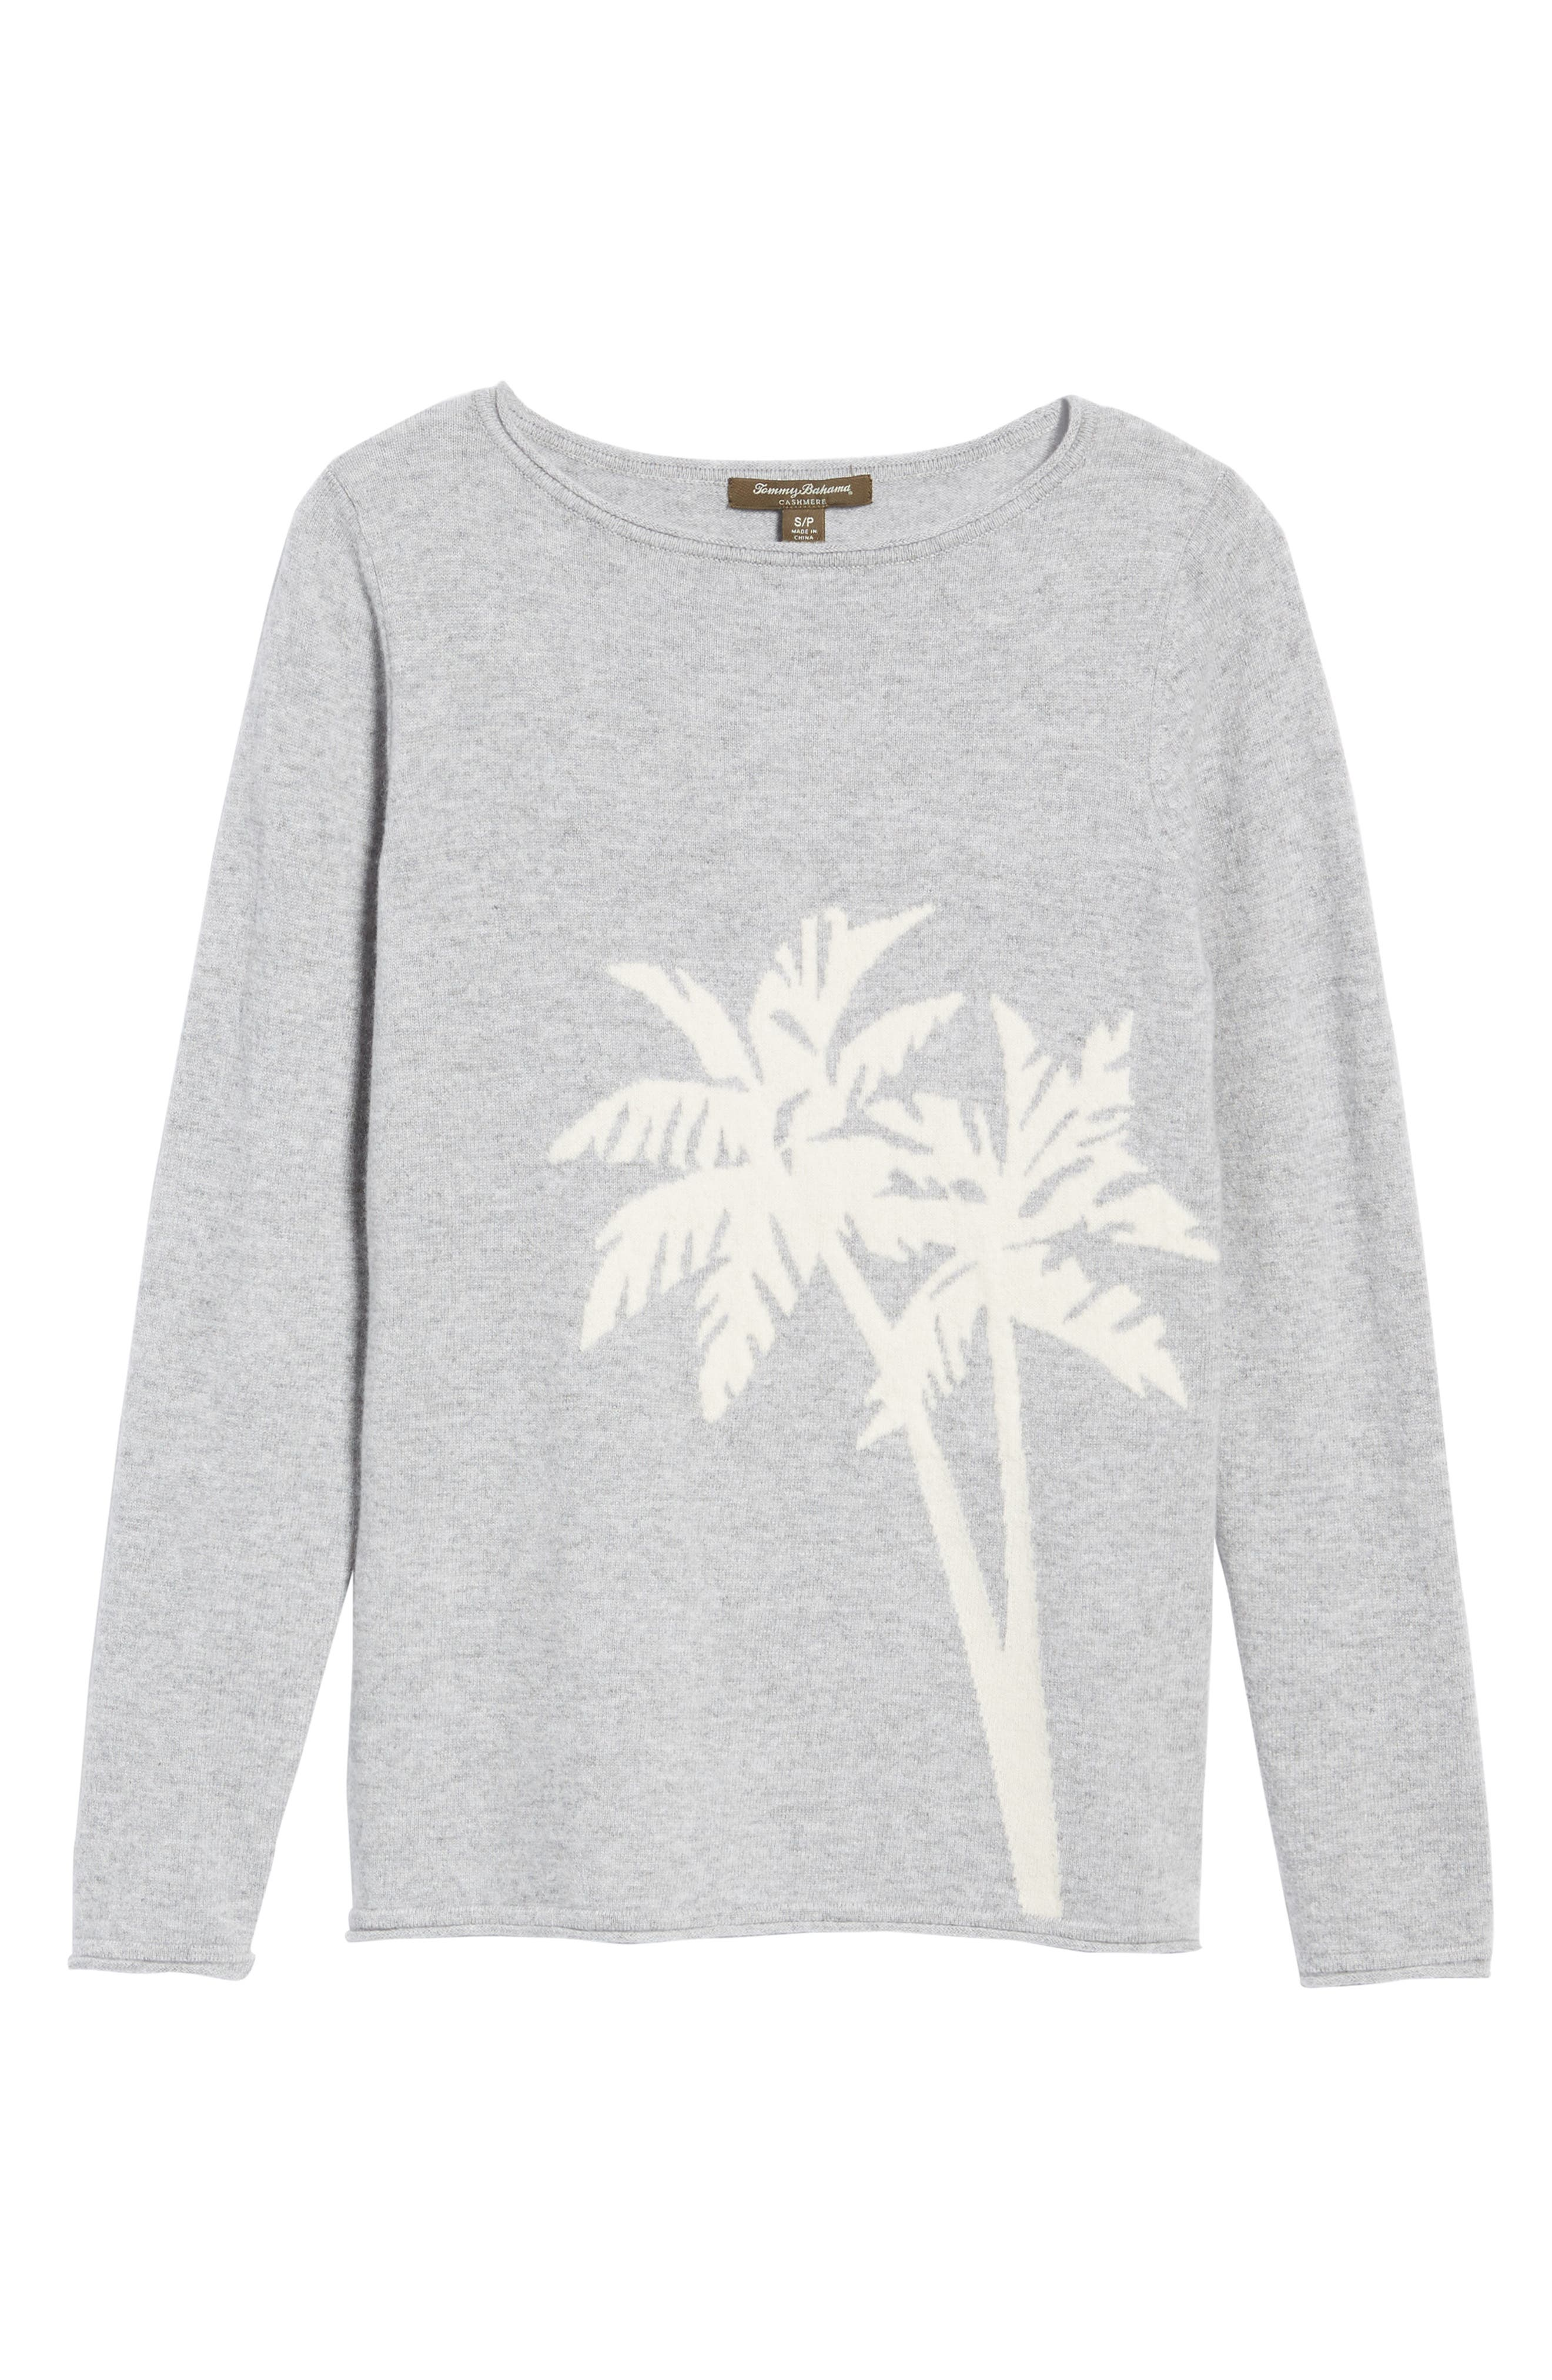 Island Palm Intarsia Cashmere Pullover,                             Alternate thumbnail 6, color,                             Light Grey Heather